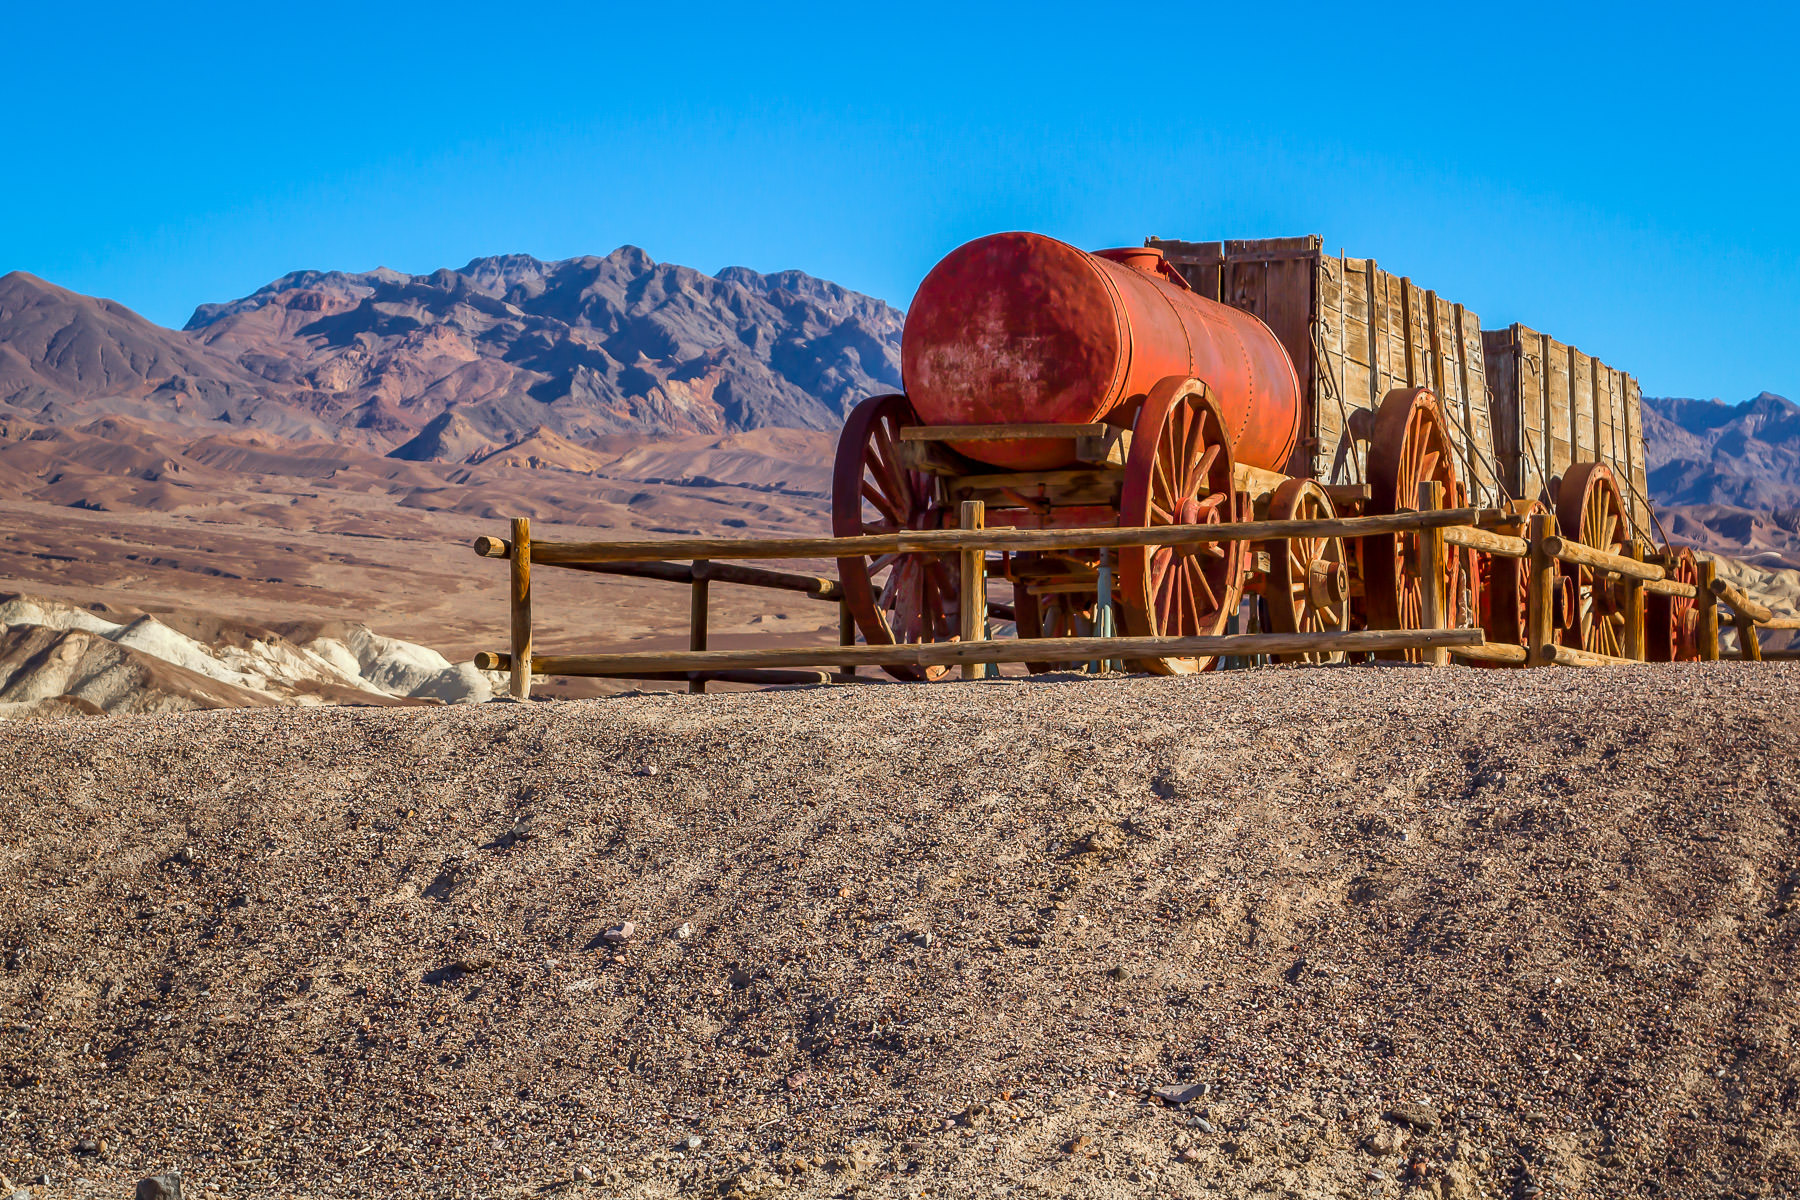 An old borax-hauling wagon train on display in California's Death Valley National Park.